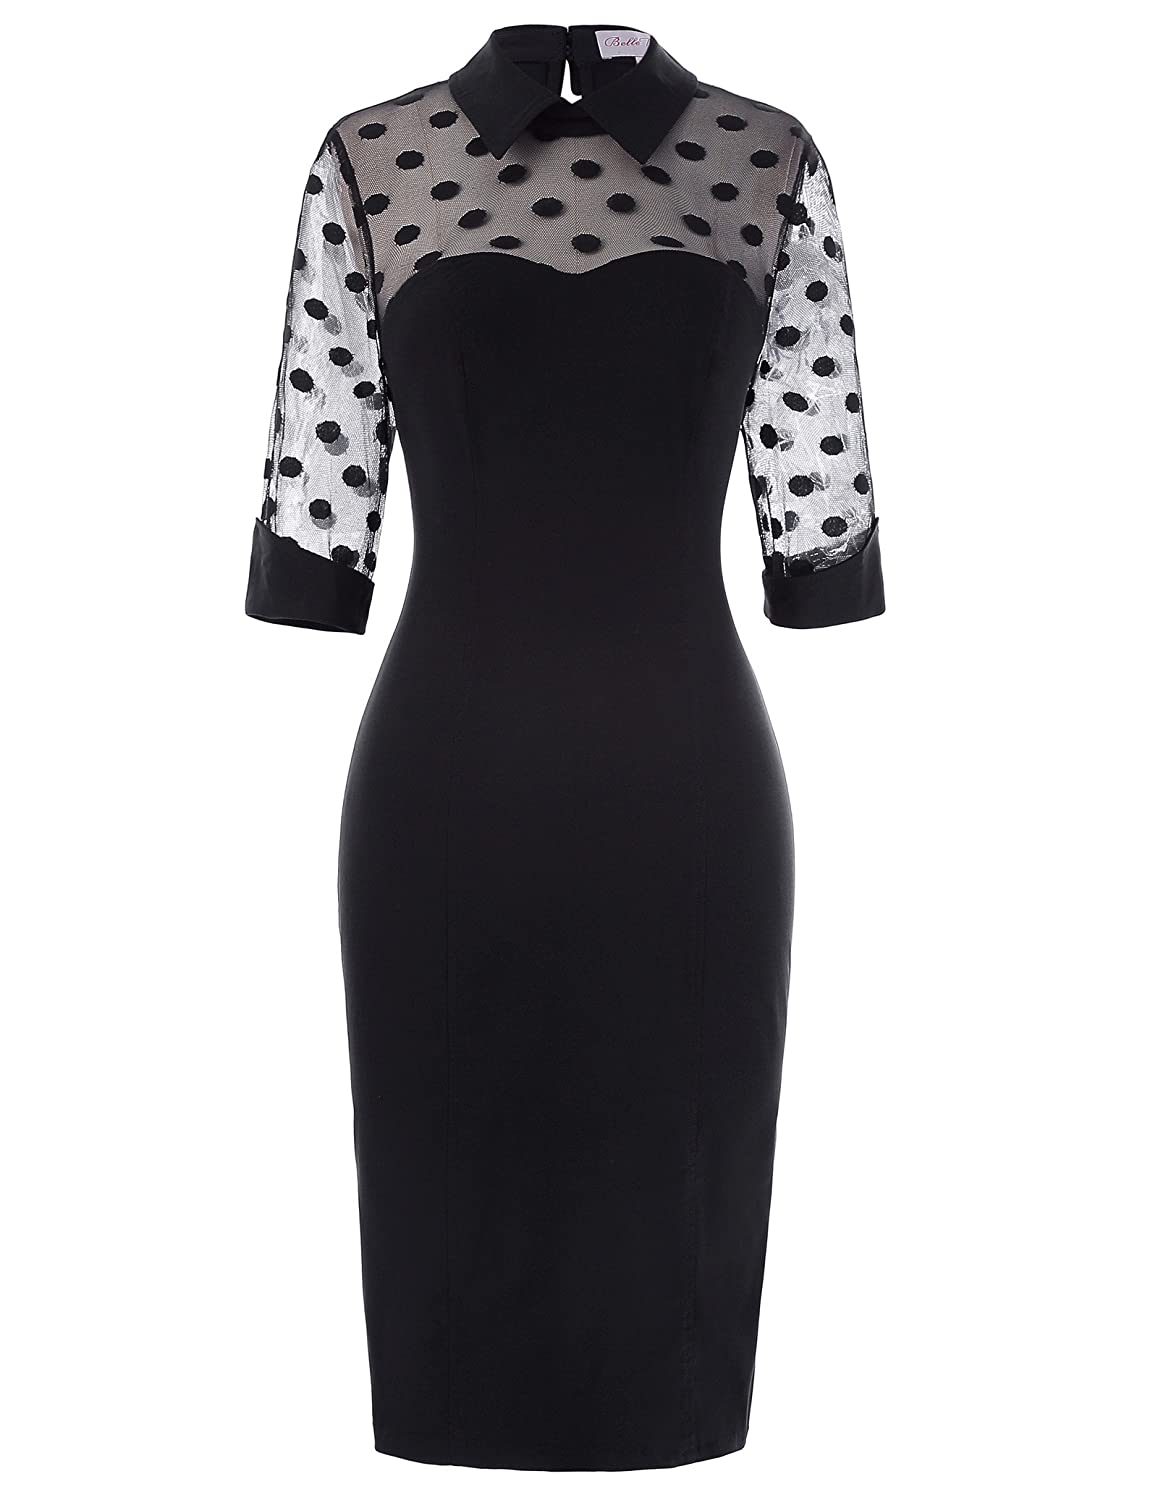 Vintage Polka Dot Dresses – 50s Spotty and Ditsy Prints Womens Summer 1950s Retro Polka Dots Lapel Collar Pencil Dress Cocktail Dresses $24.99 AT vintagedancer.com